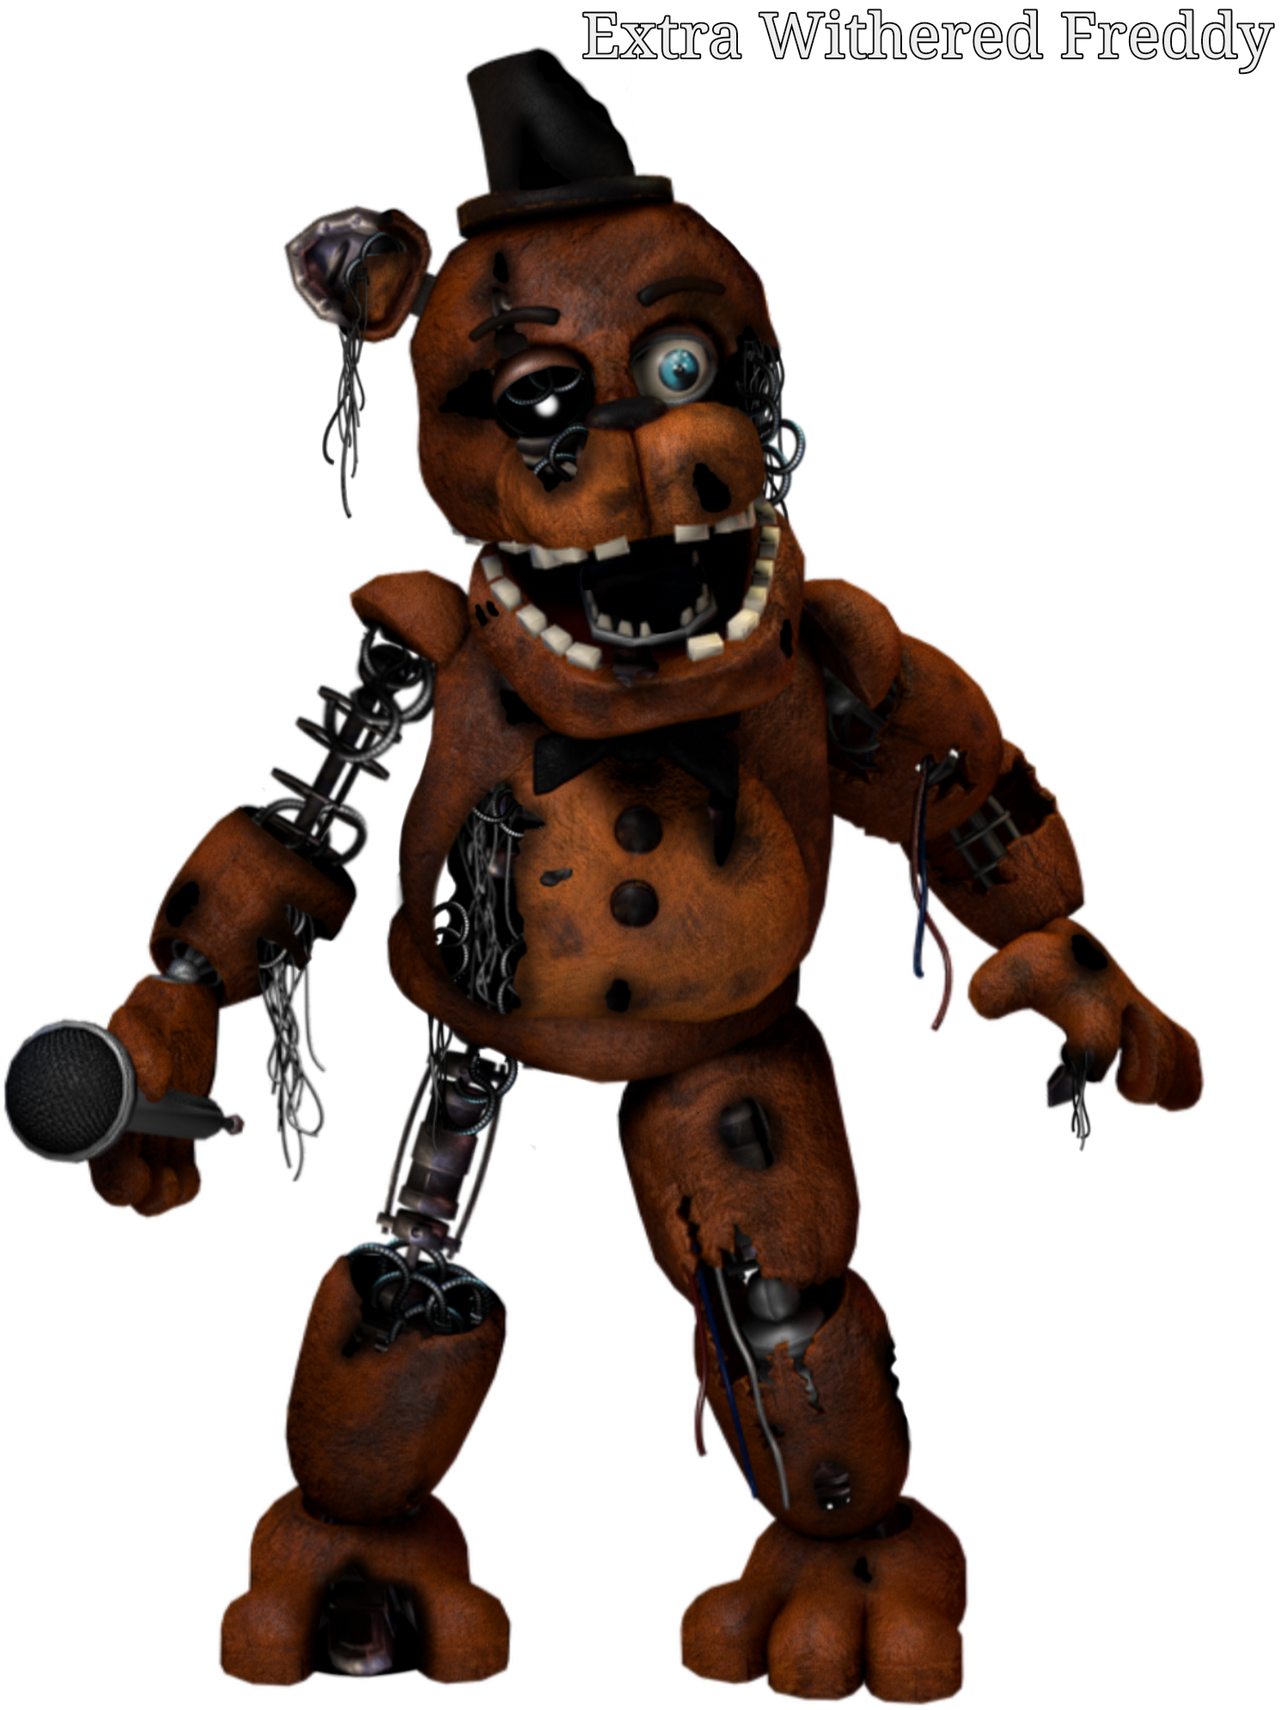 Extra Withered Freddy By Nightmarefred2058 On Deviantart Withered freddy is brought to the present day to take on the toy mode in one night at freddy's withered freddy statue tutorial! extra withered freddy by